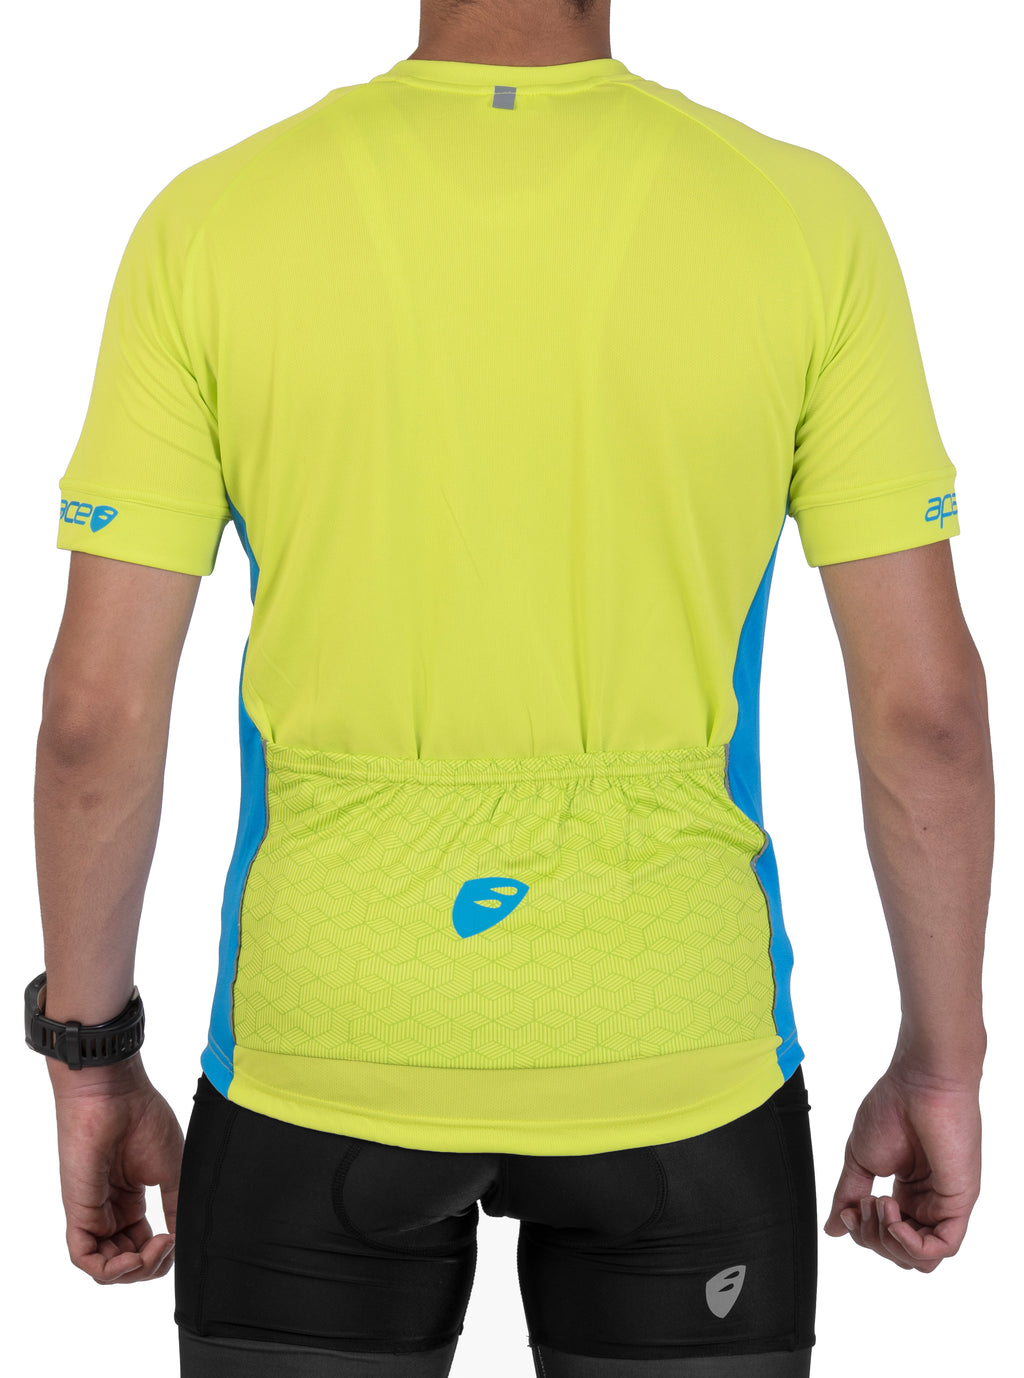 Apace 2018 Chase Pro Fit Cycling Jersey - Mens - Lime Green